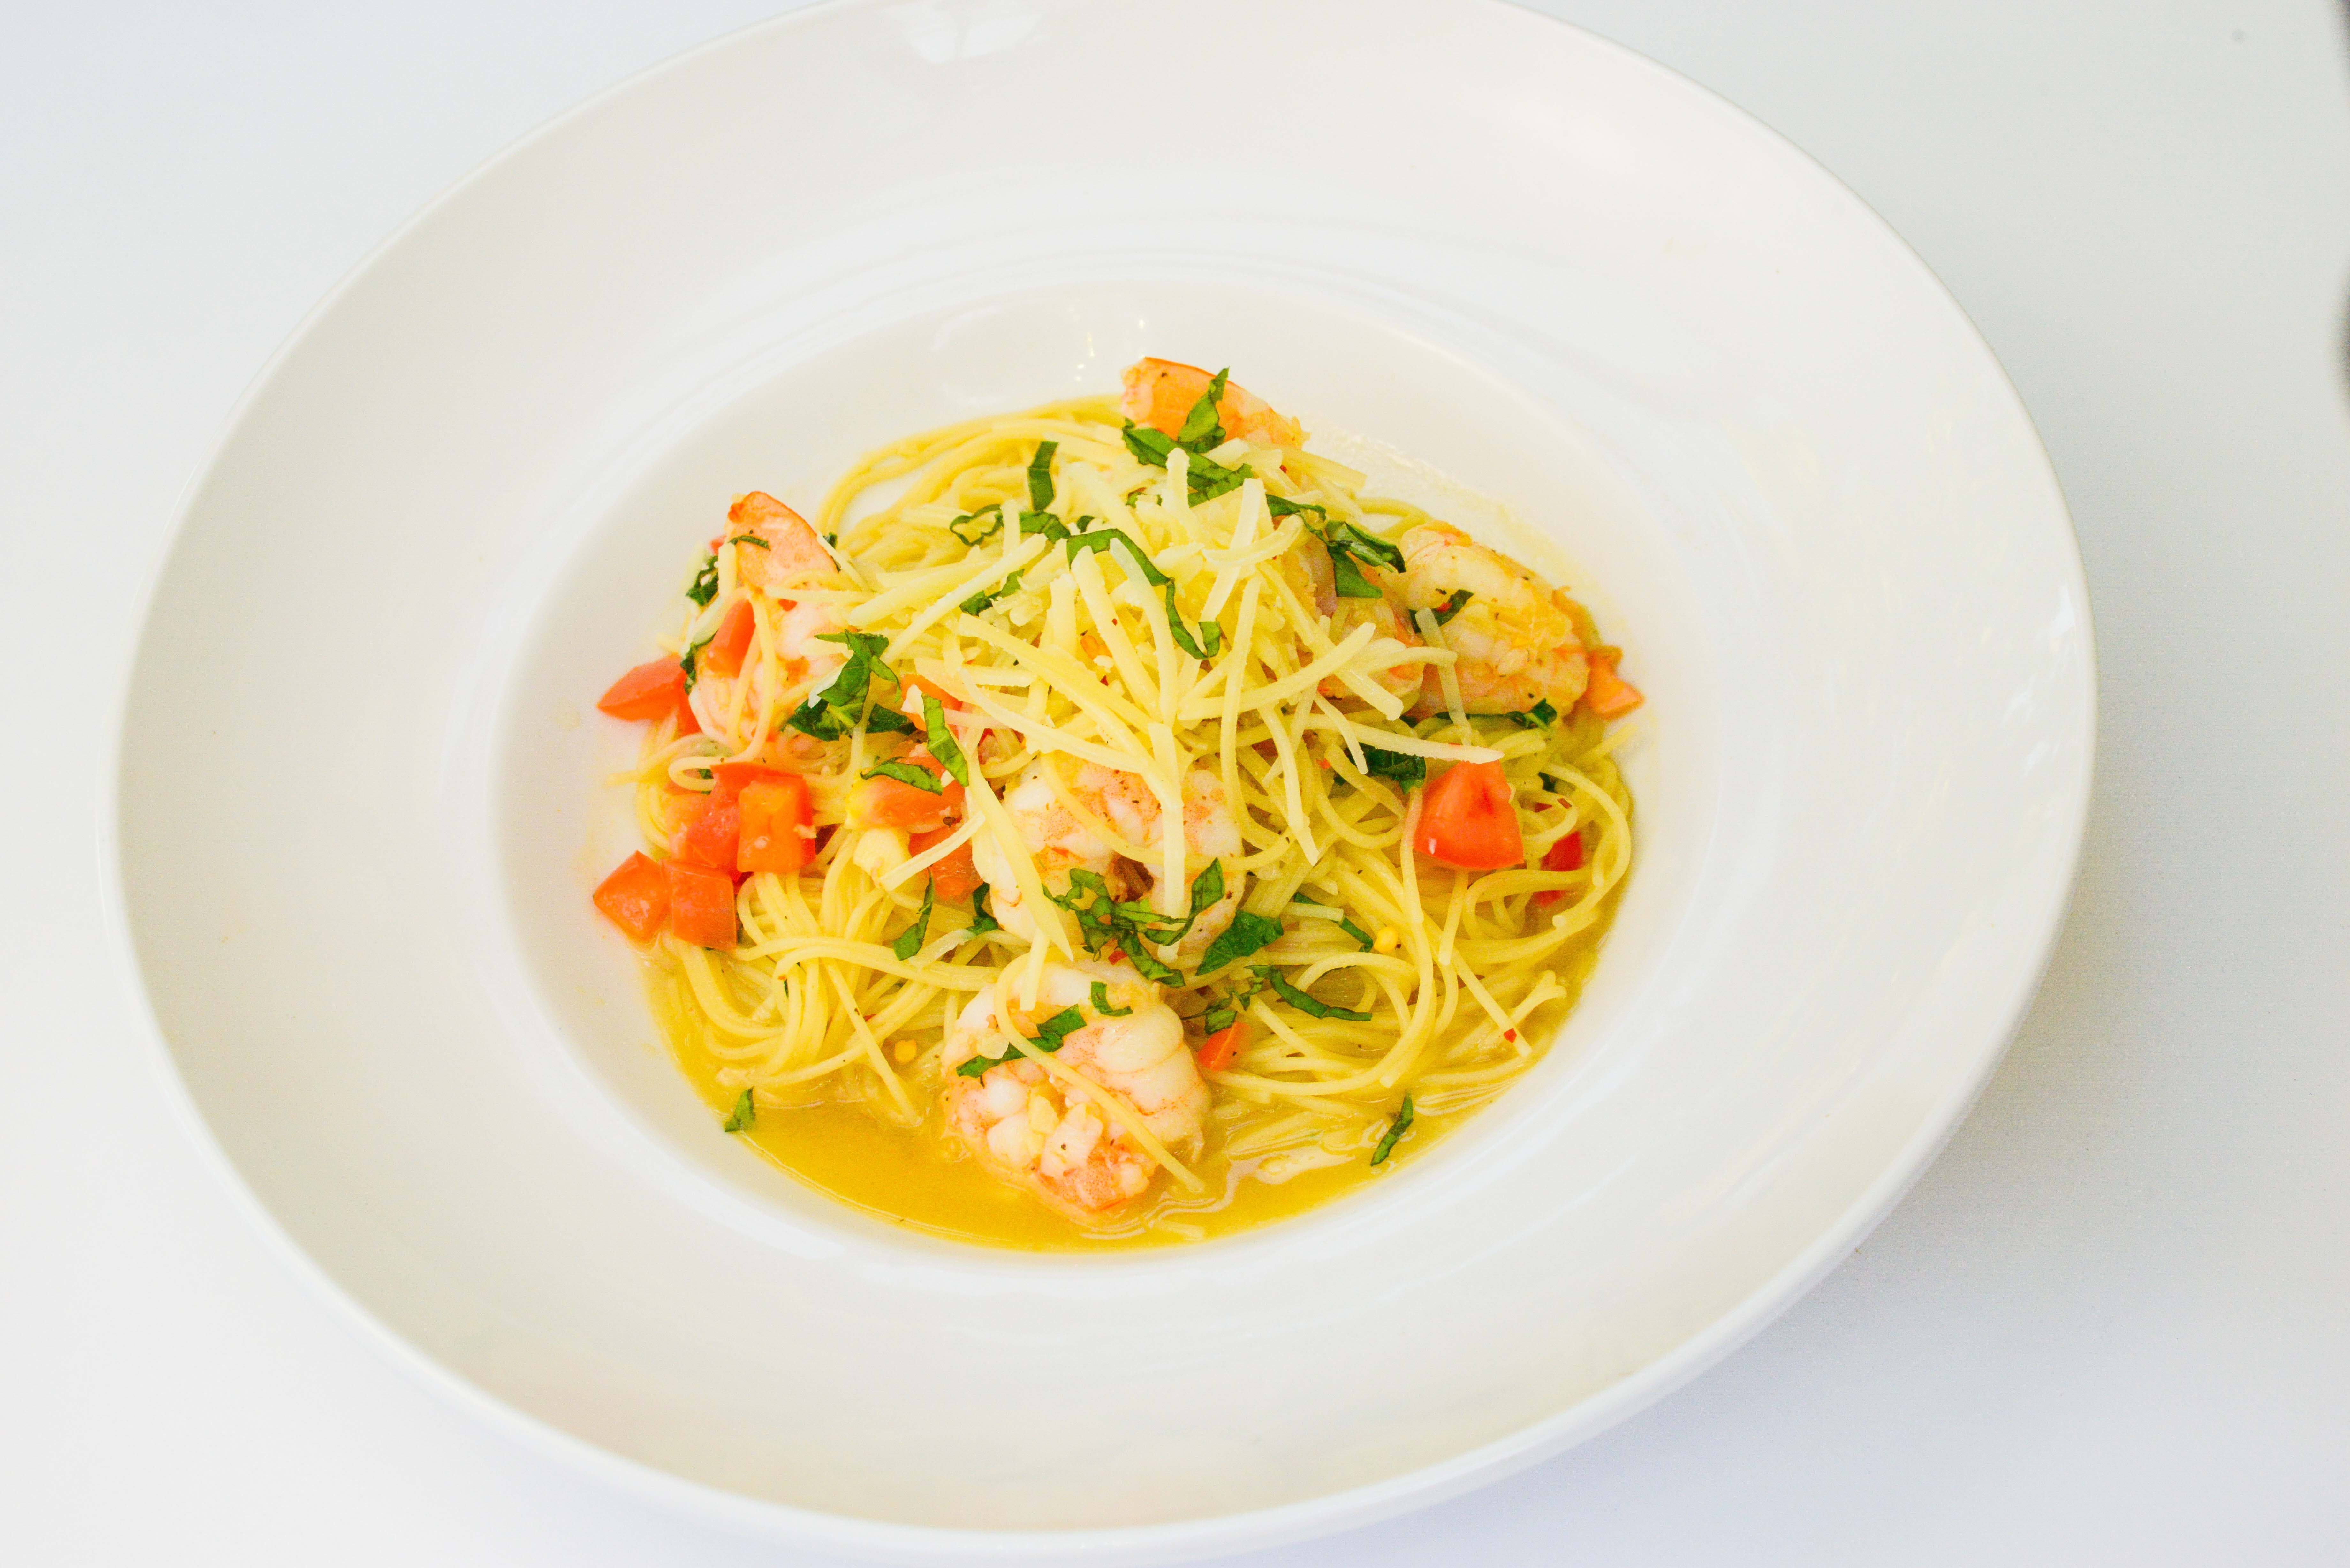 Dish with spaghetti, shrimp, tomatoes, and shredded basil leaves